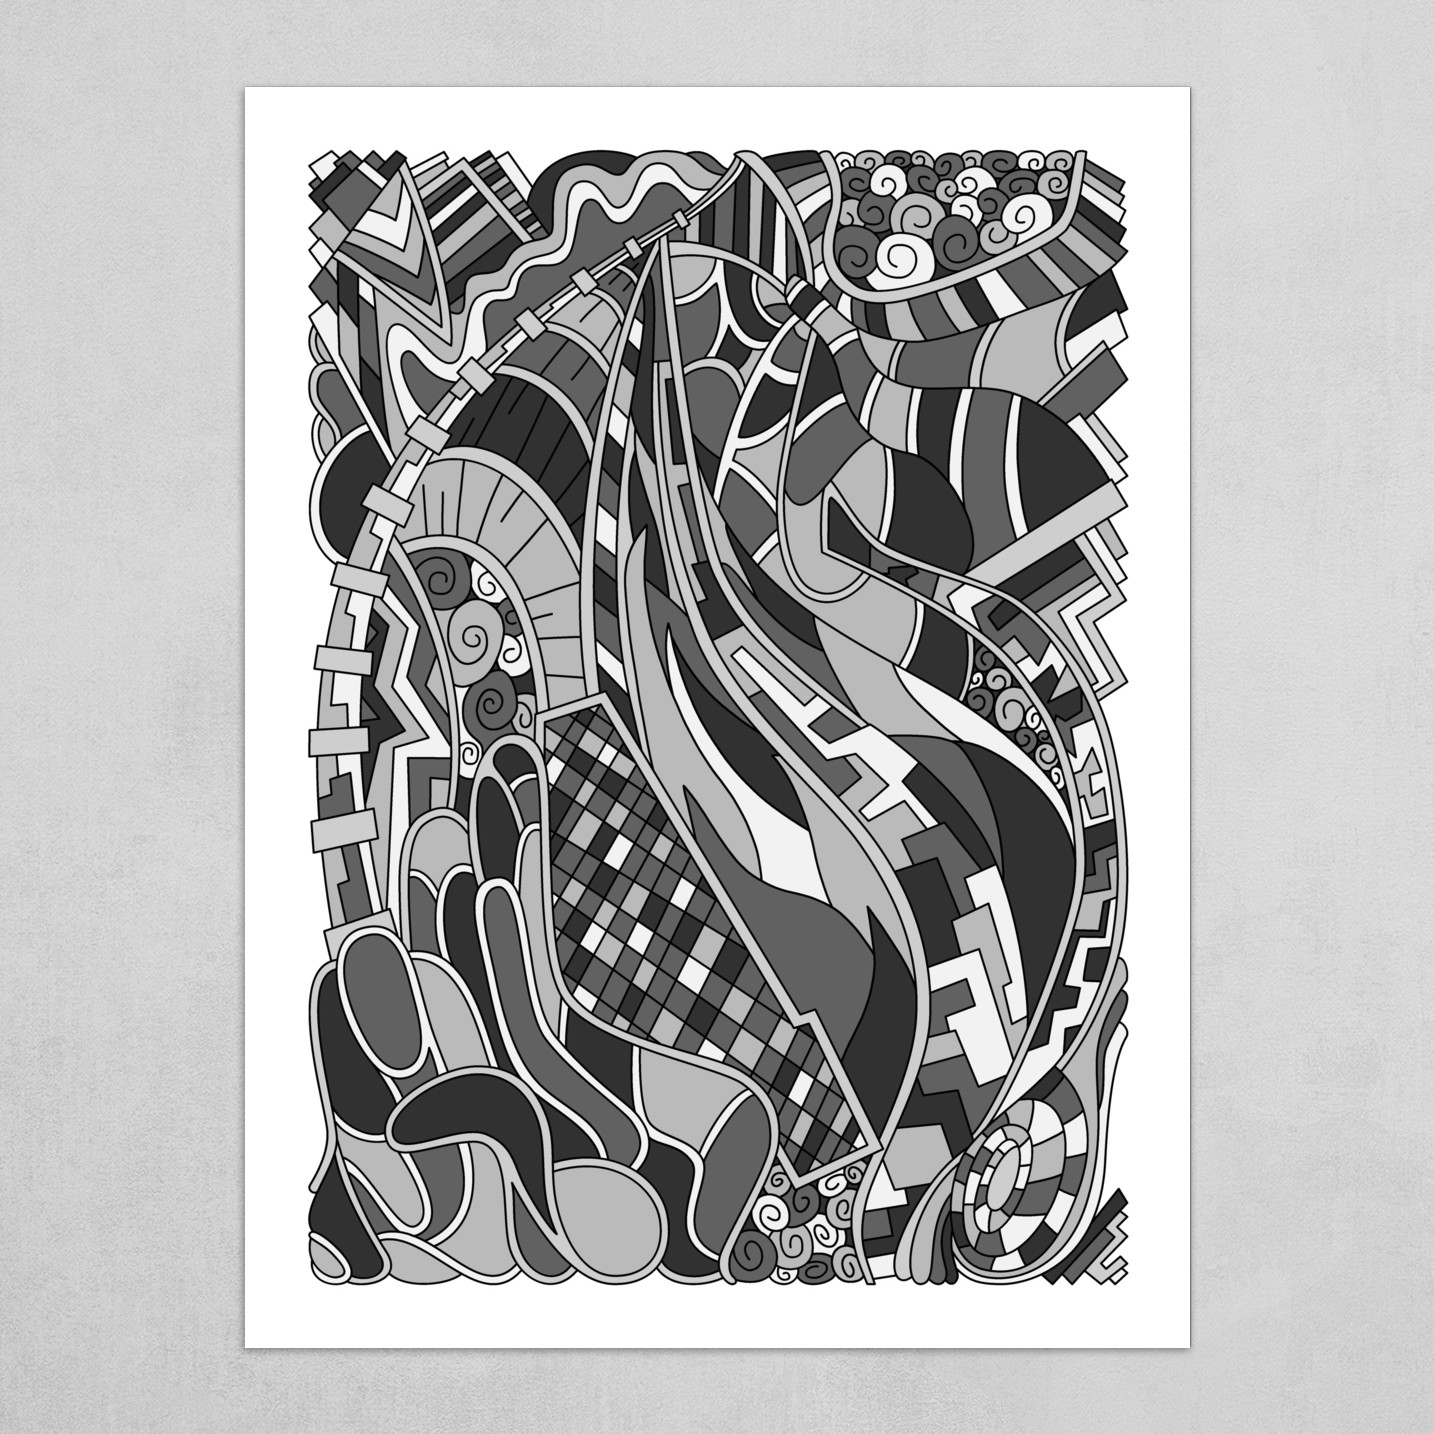 Wandering Abstract Line Art 31: Grayscale